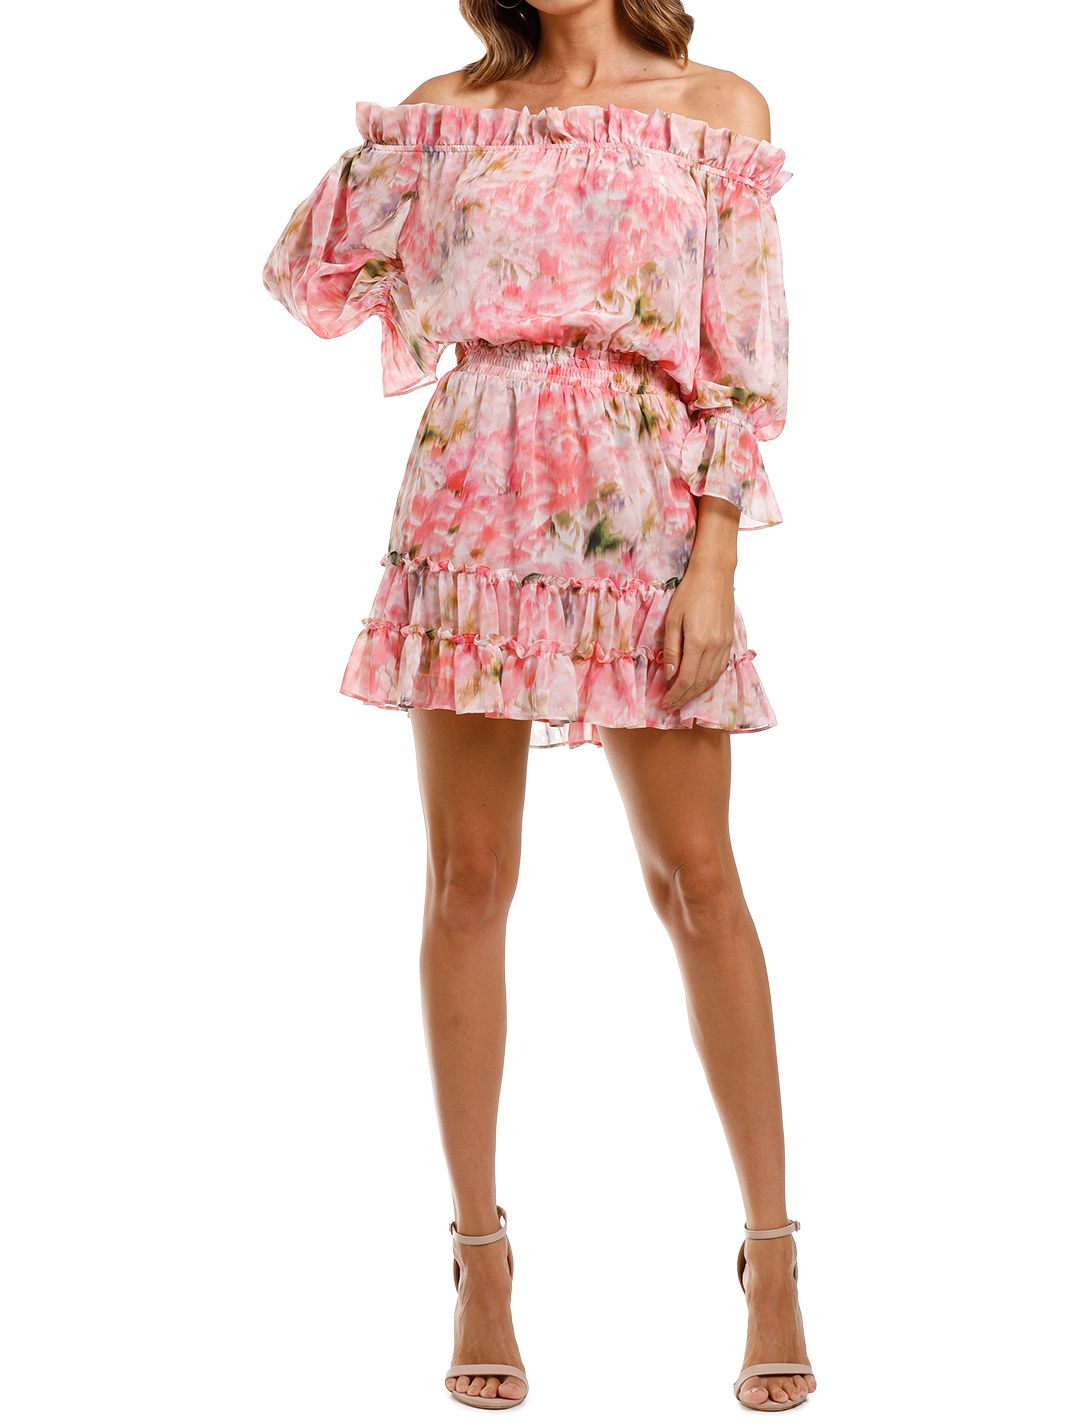 Misa LA Danae Dress mini ruffle hem